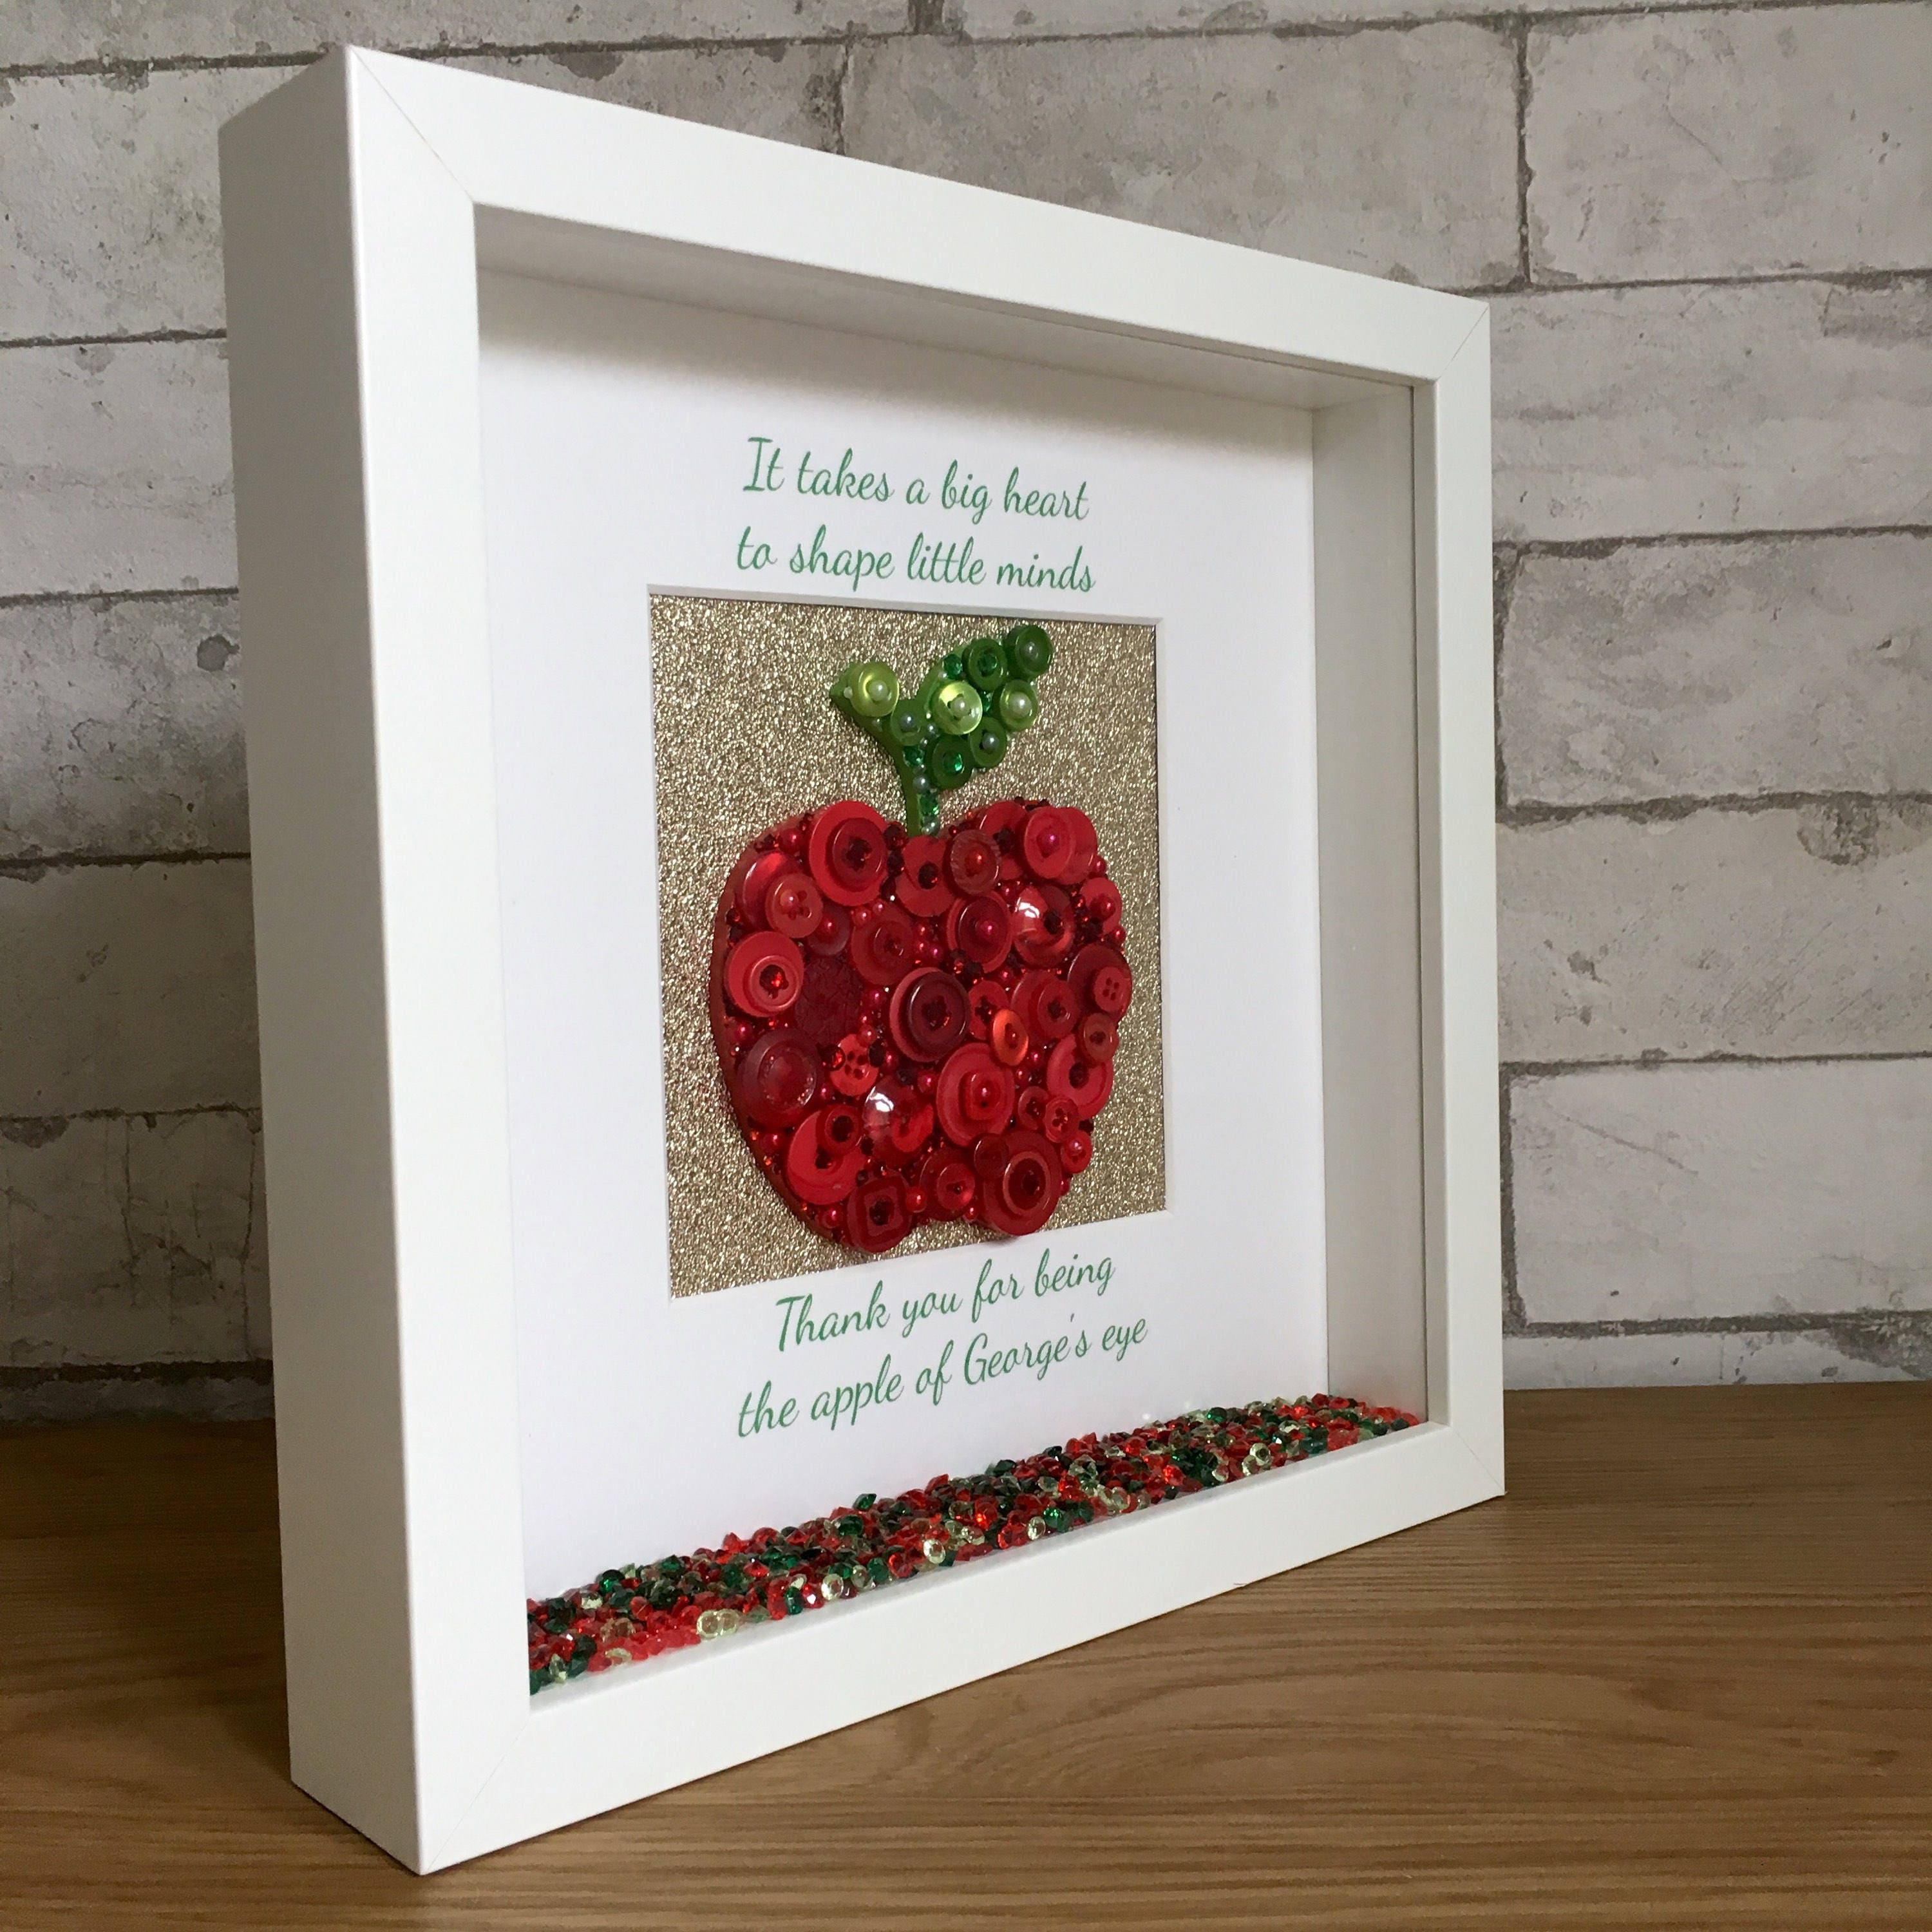 Personalised teacher gift thank you gifts for teachers sold by beckifoundsometime jeuxipadfo Choice Image